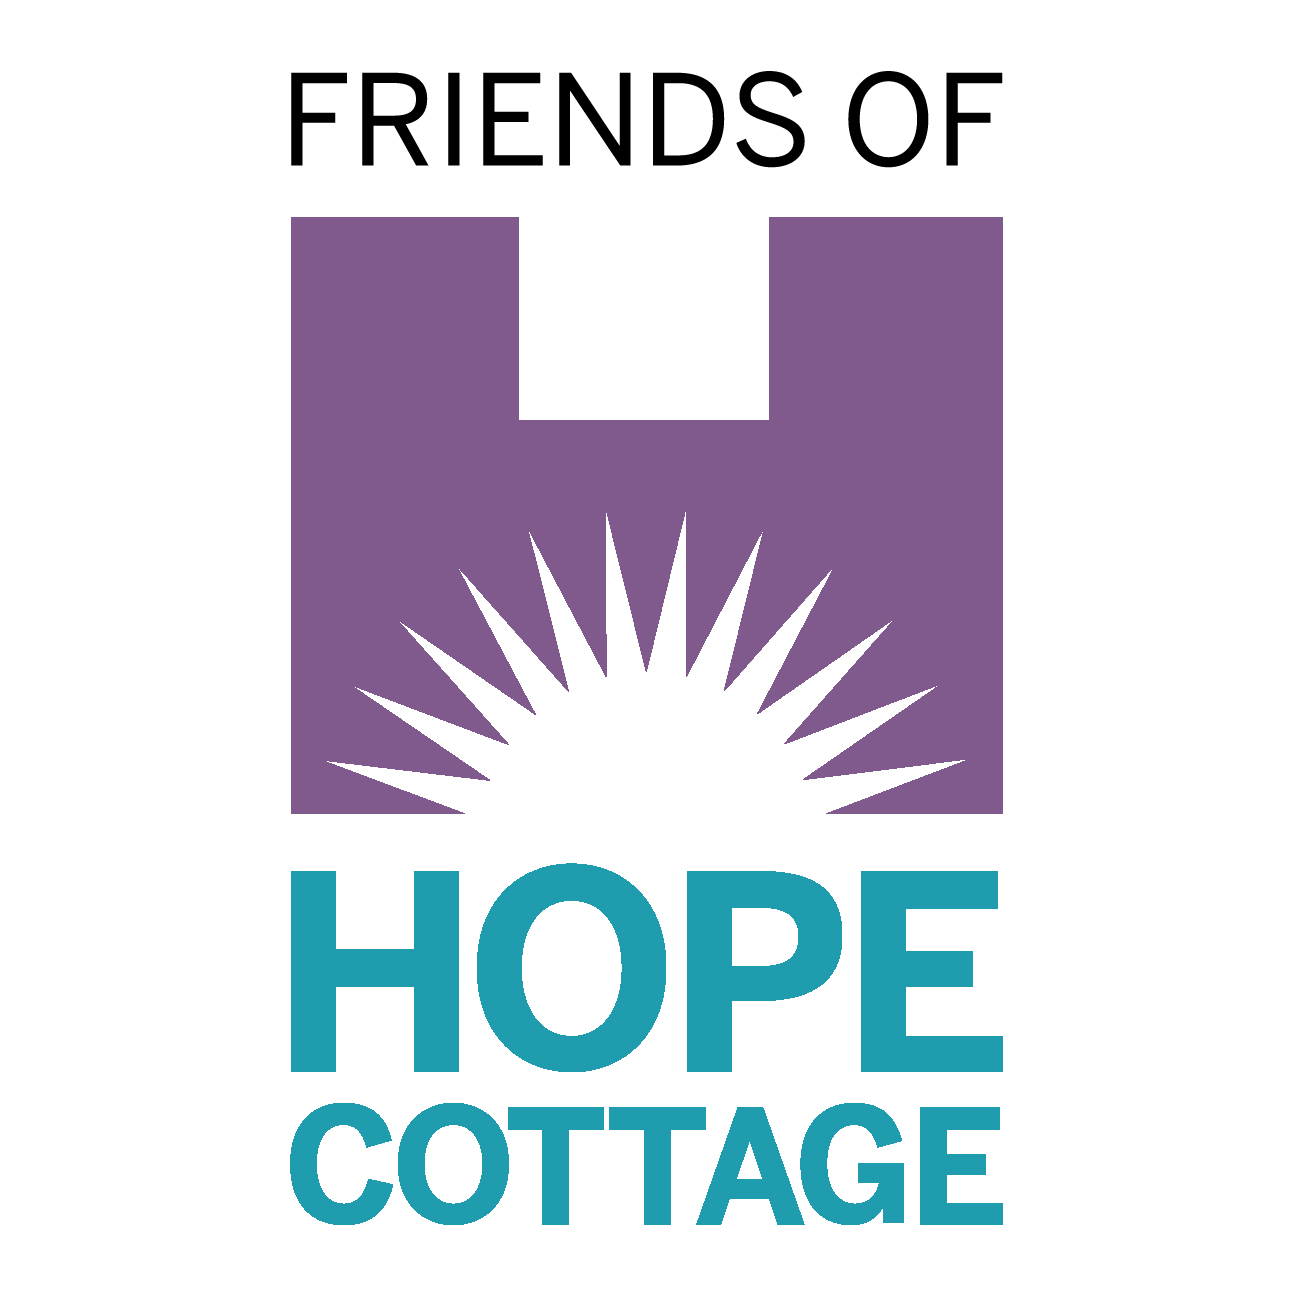 Friends of Hope Cottage-05 squareteal.jpg